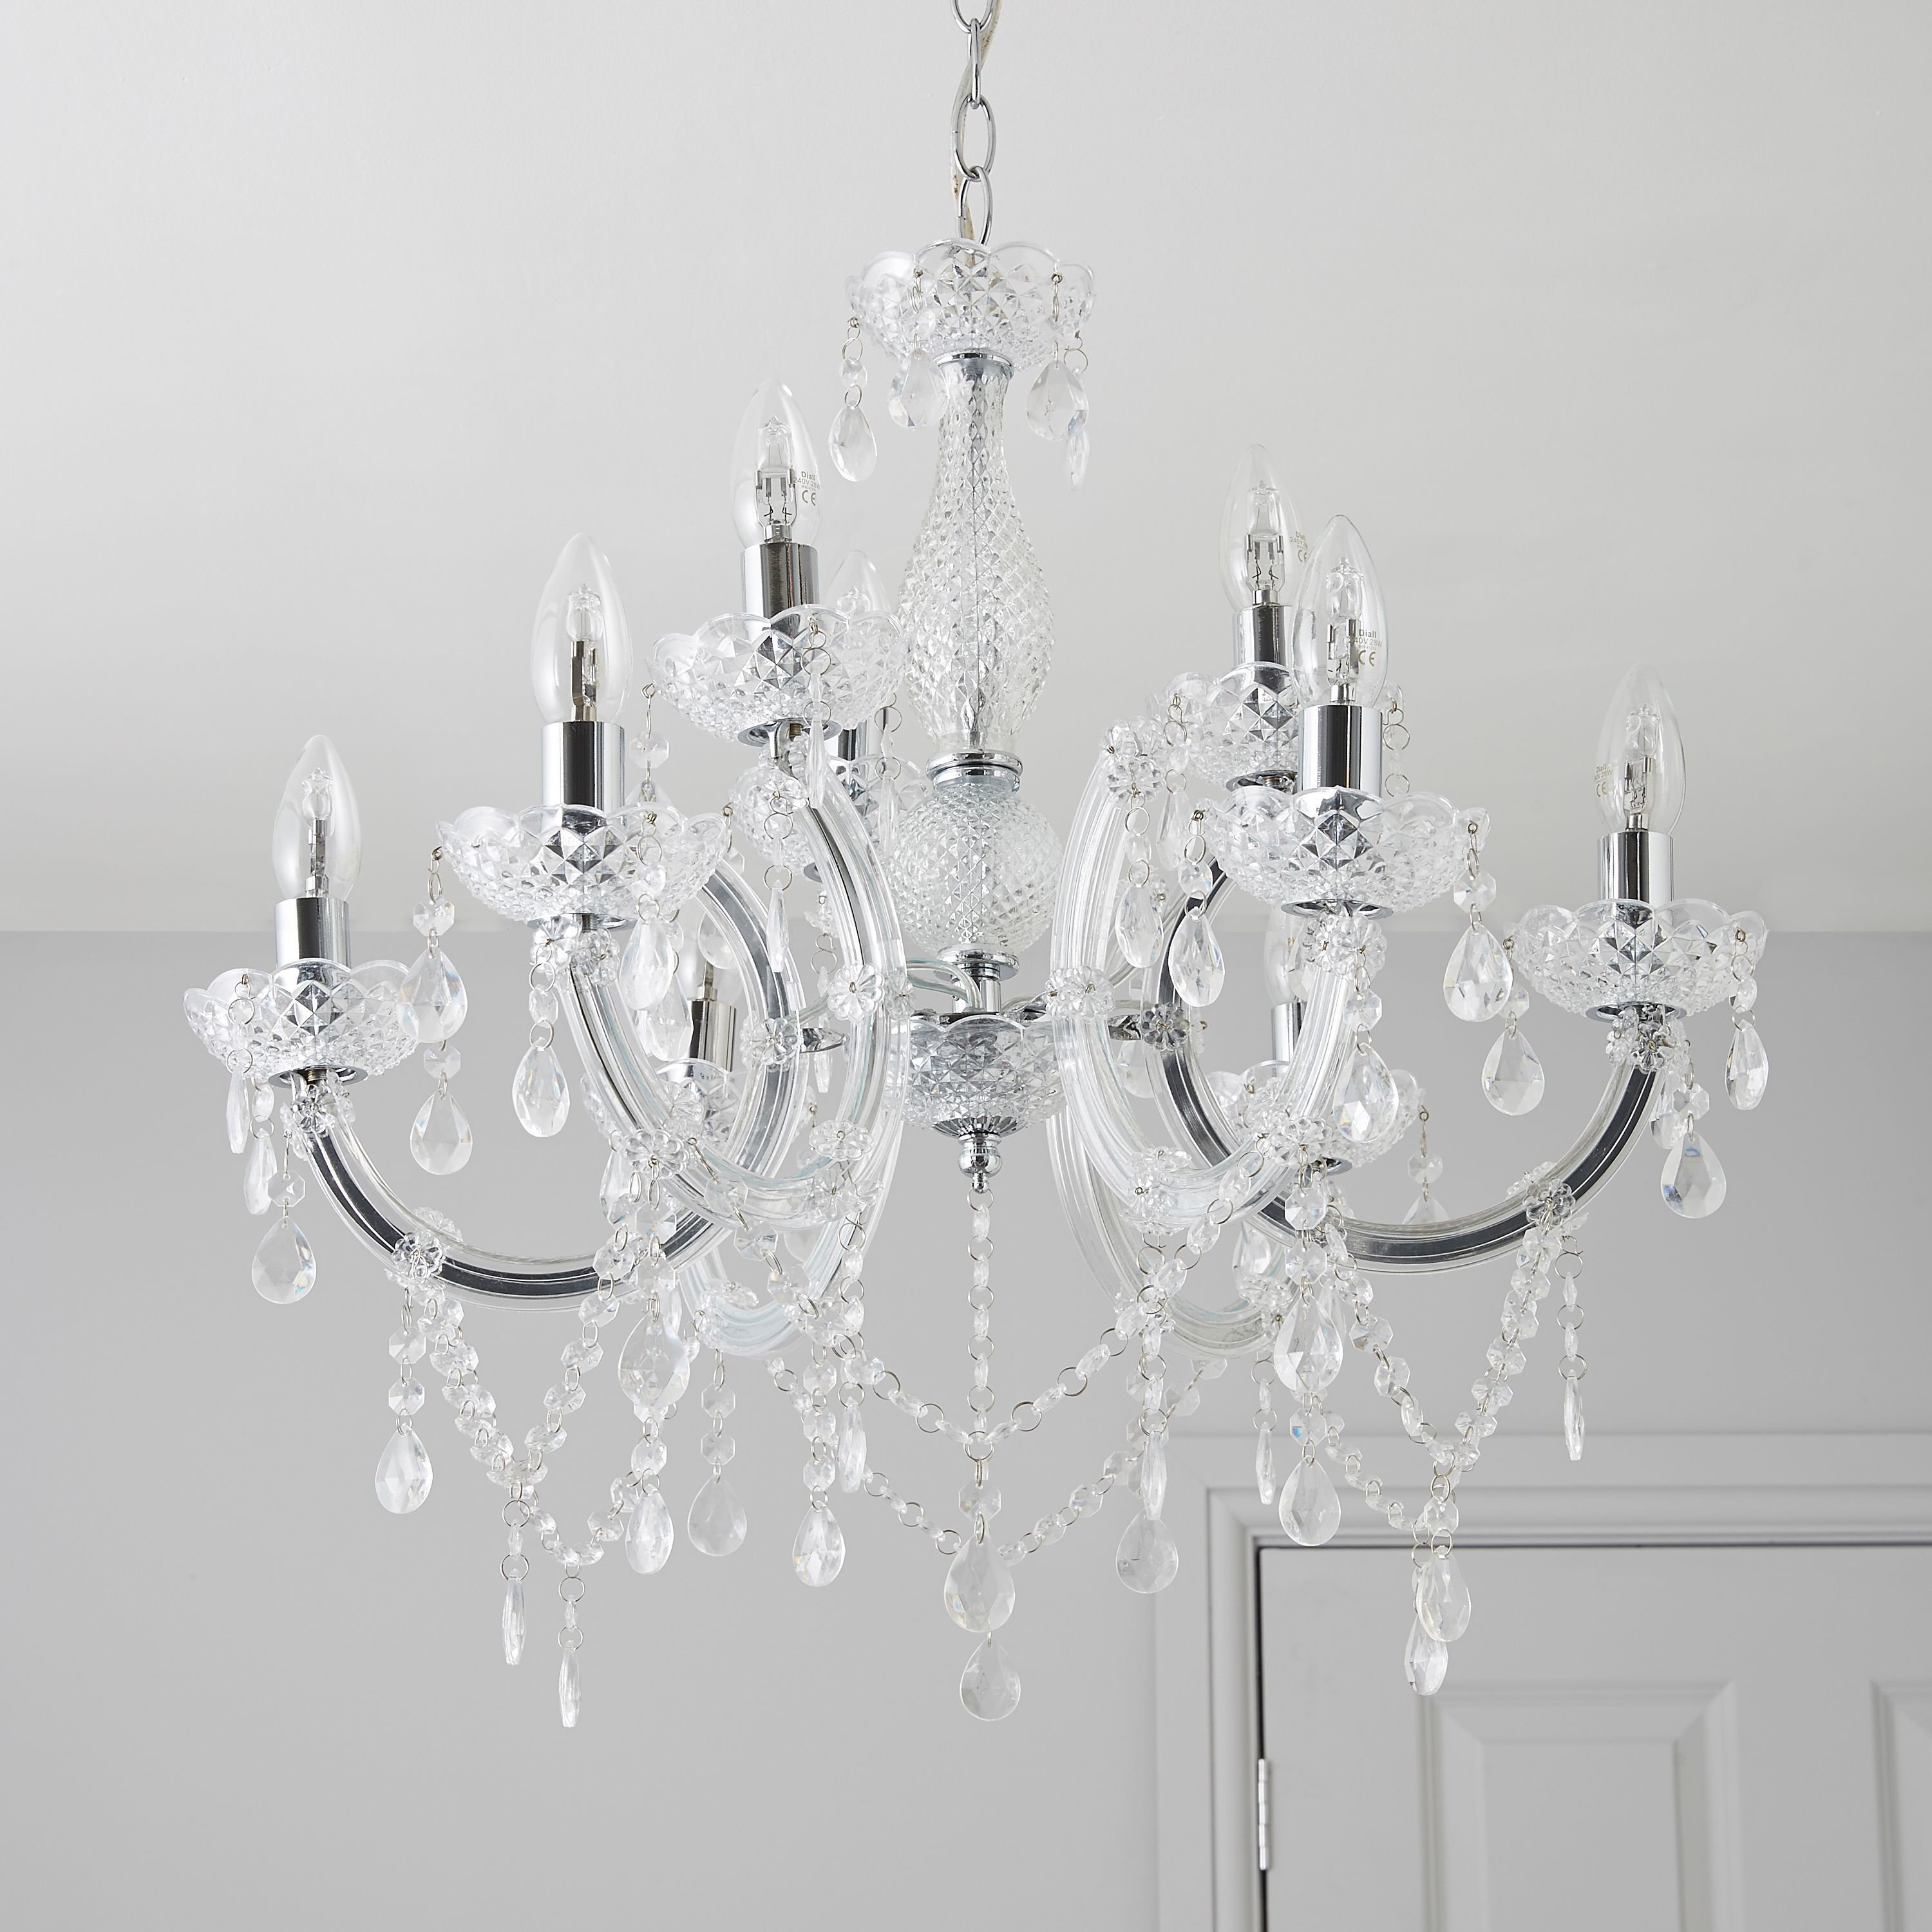 Best Annelise Crystal Droplets Silver 9 Lamp Pendant Ceiling Light Ceiling Bedrooms And Room With Pictures